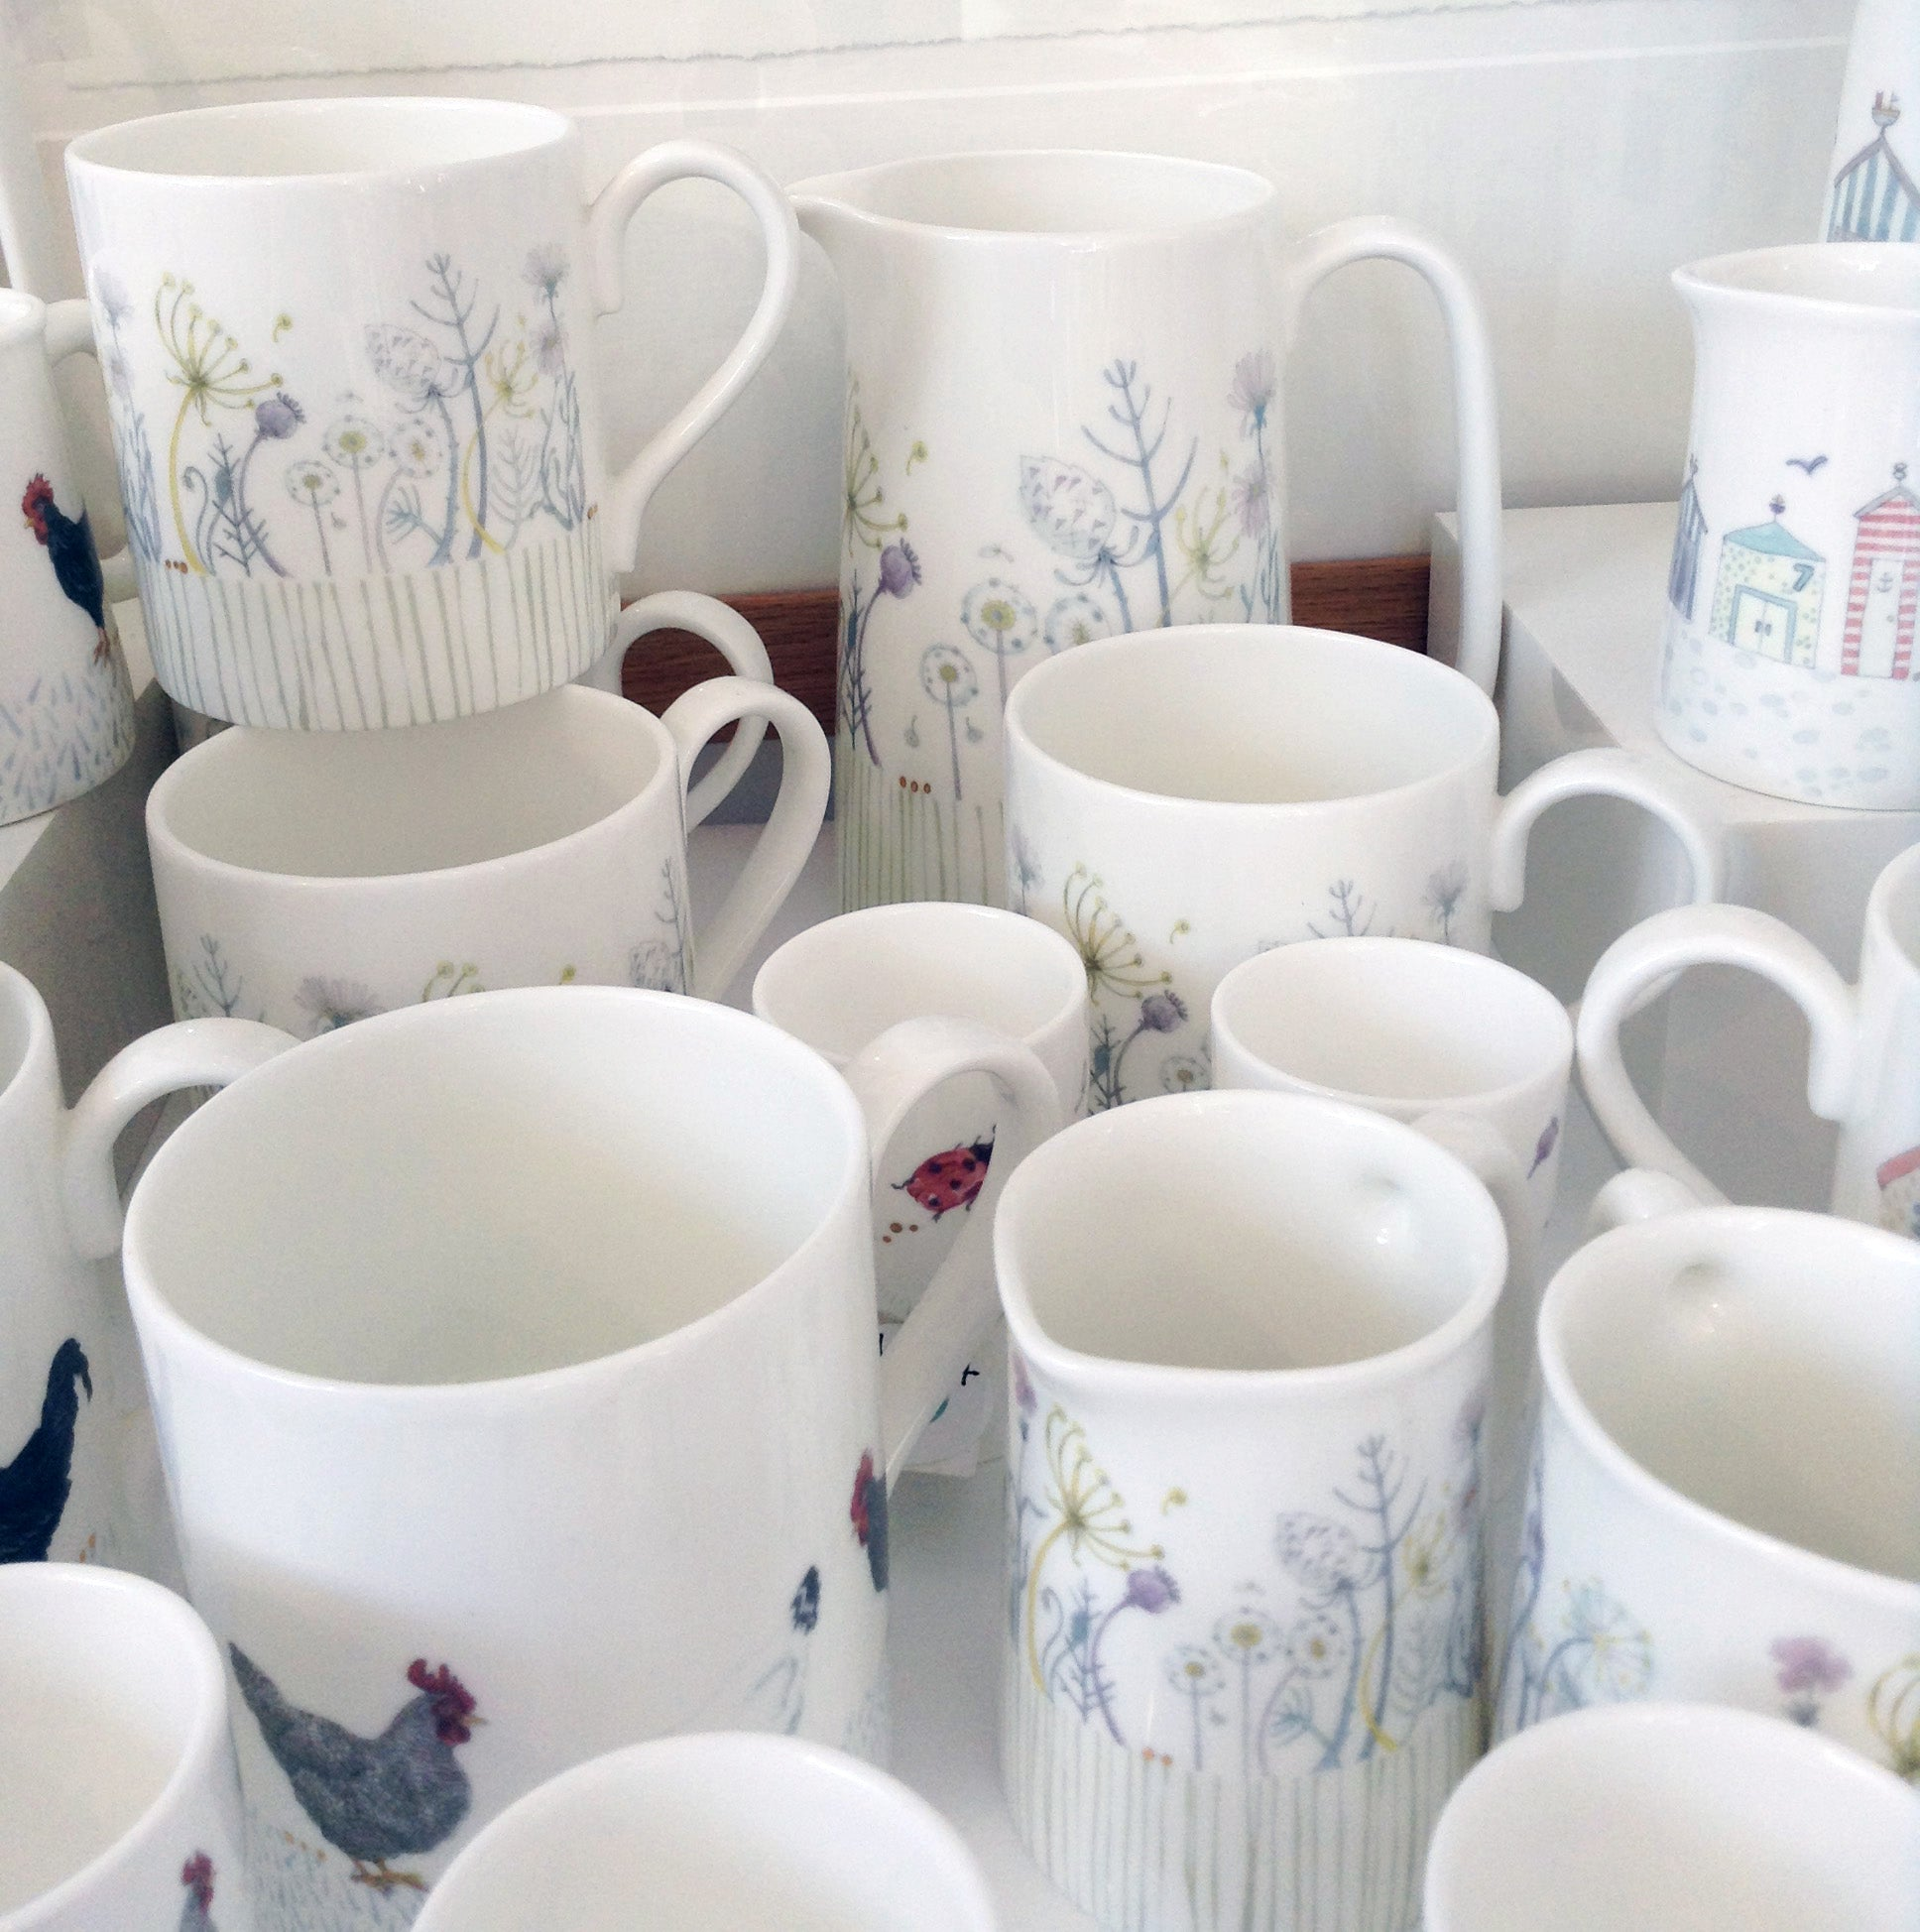 Bone China Tableware by Julia Davey W11JD44 ... & Bone China Tableware by Julia Davey W11JD44 - therobinsnestgallery